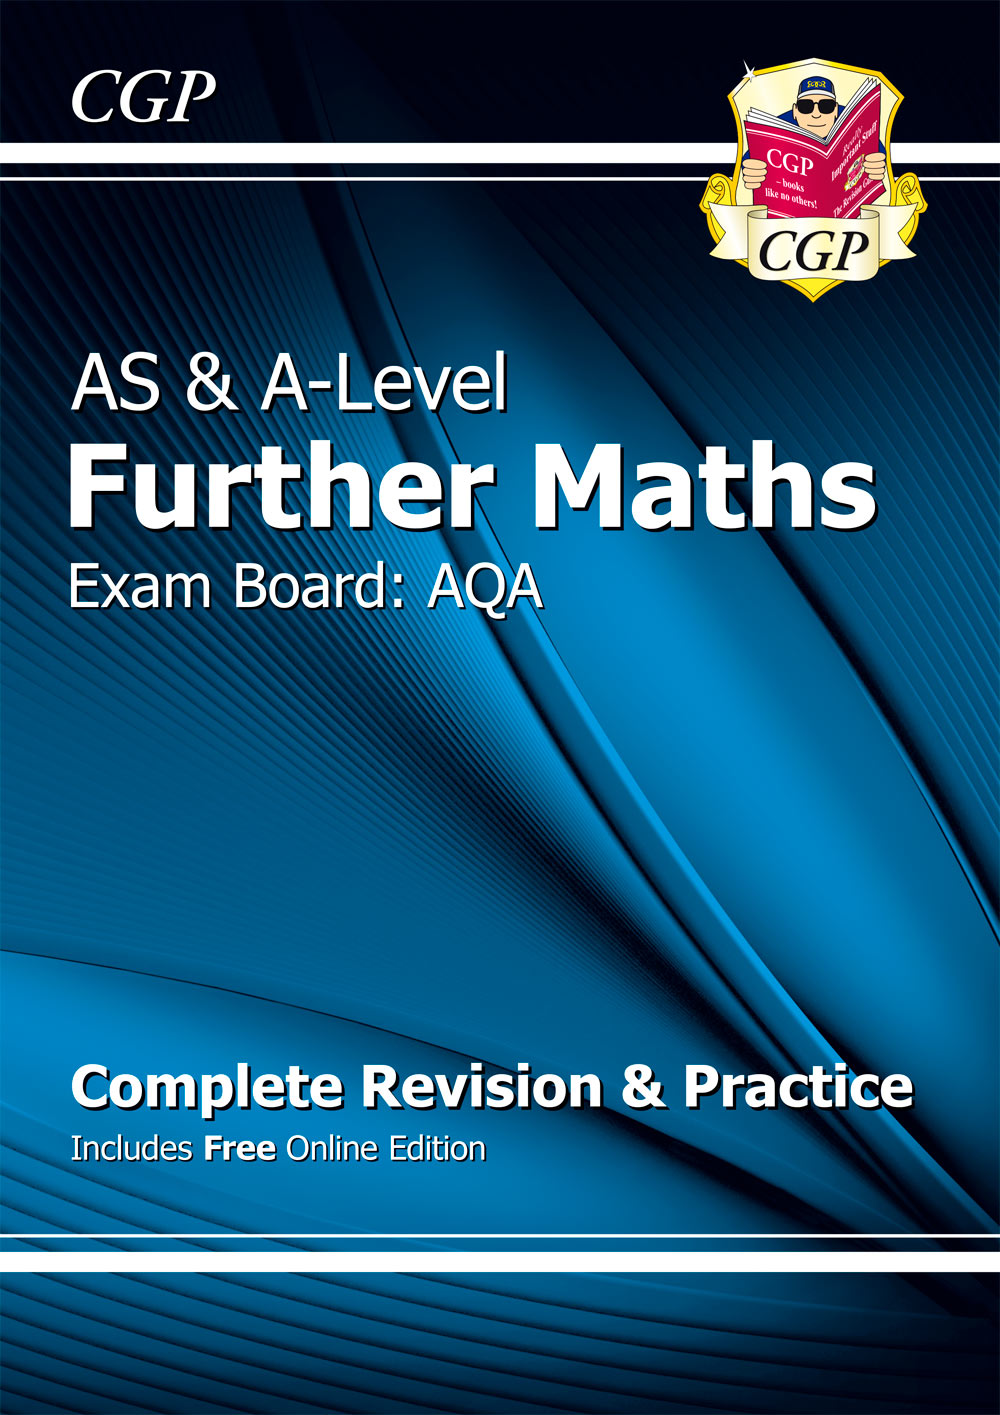 MFAR71 - New AS & A-Level Further Maths for AQA: Complete Revision & Practice with Online Edition